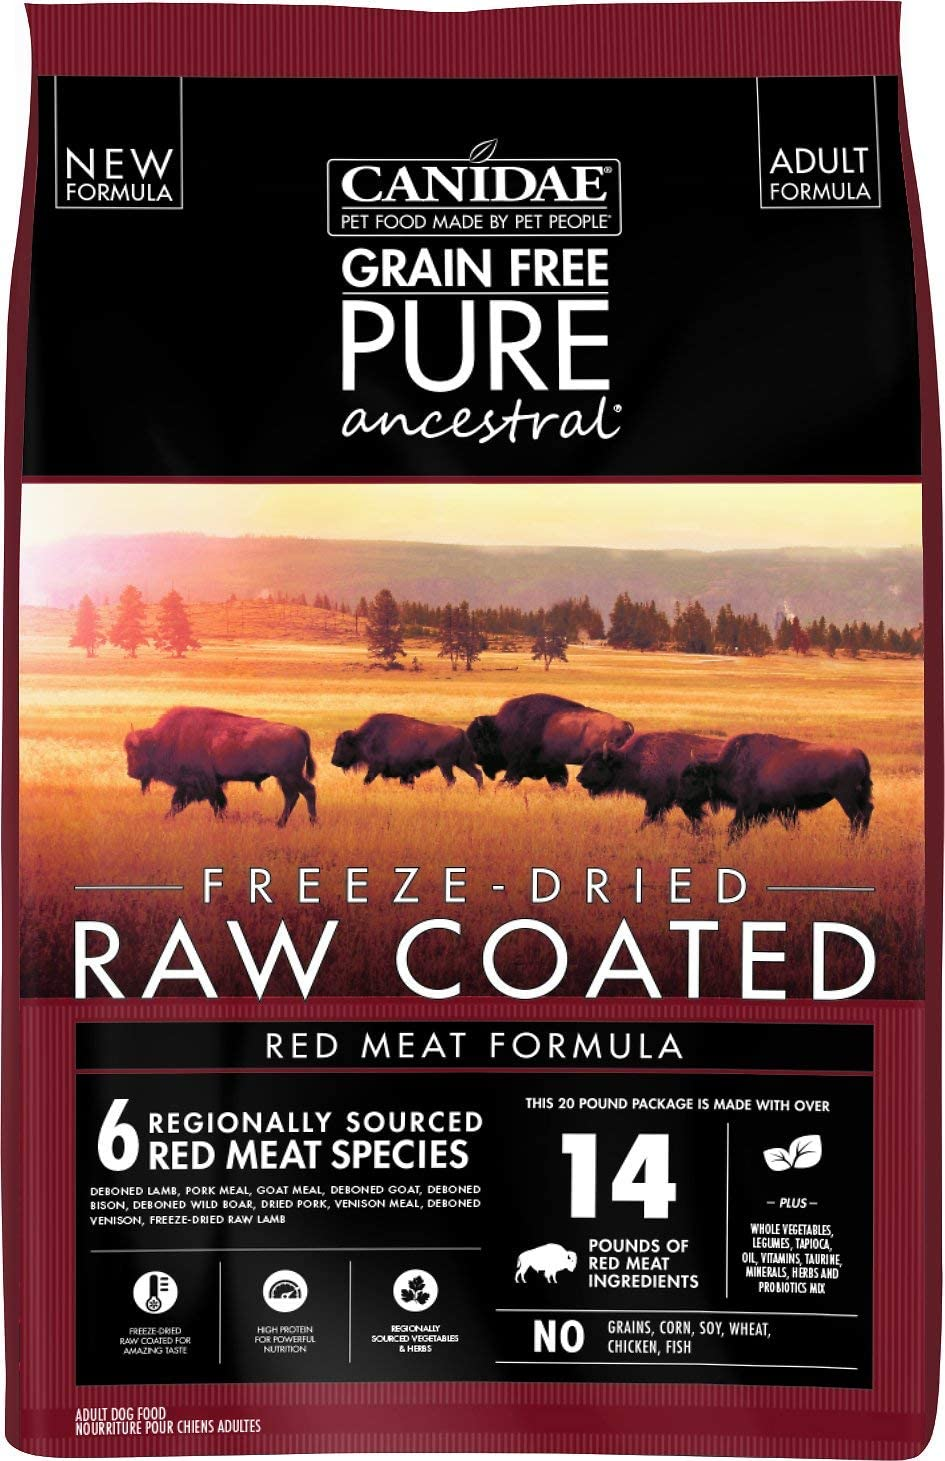 Canidae Pure Ancestral Best Dog Food to prevent gas